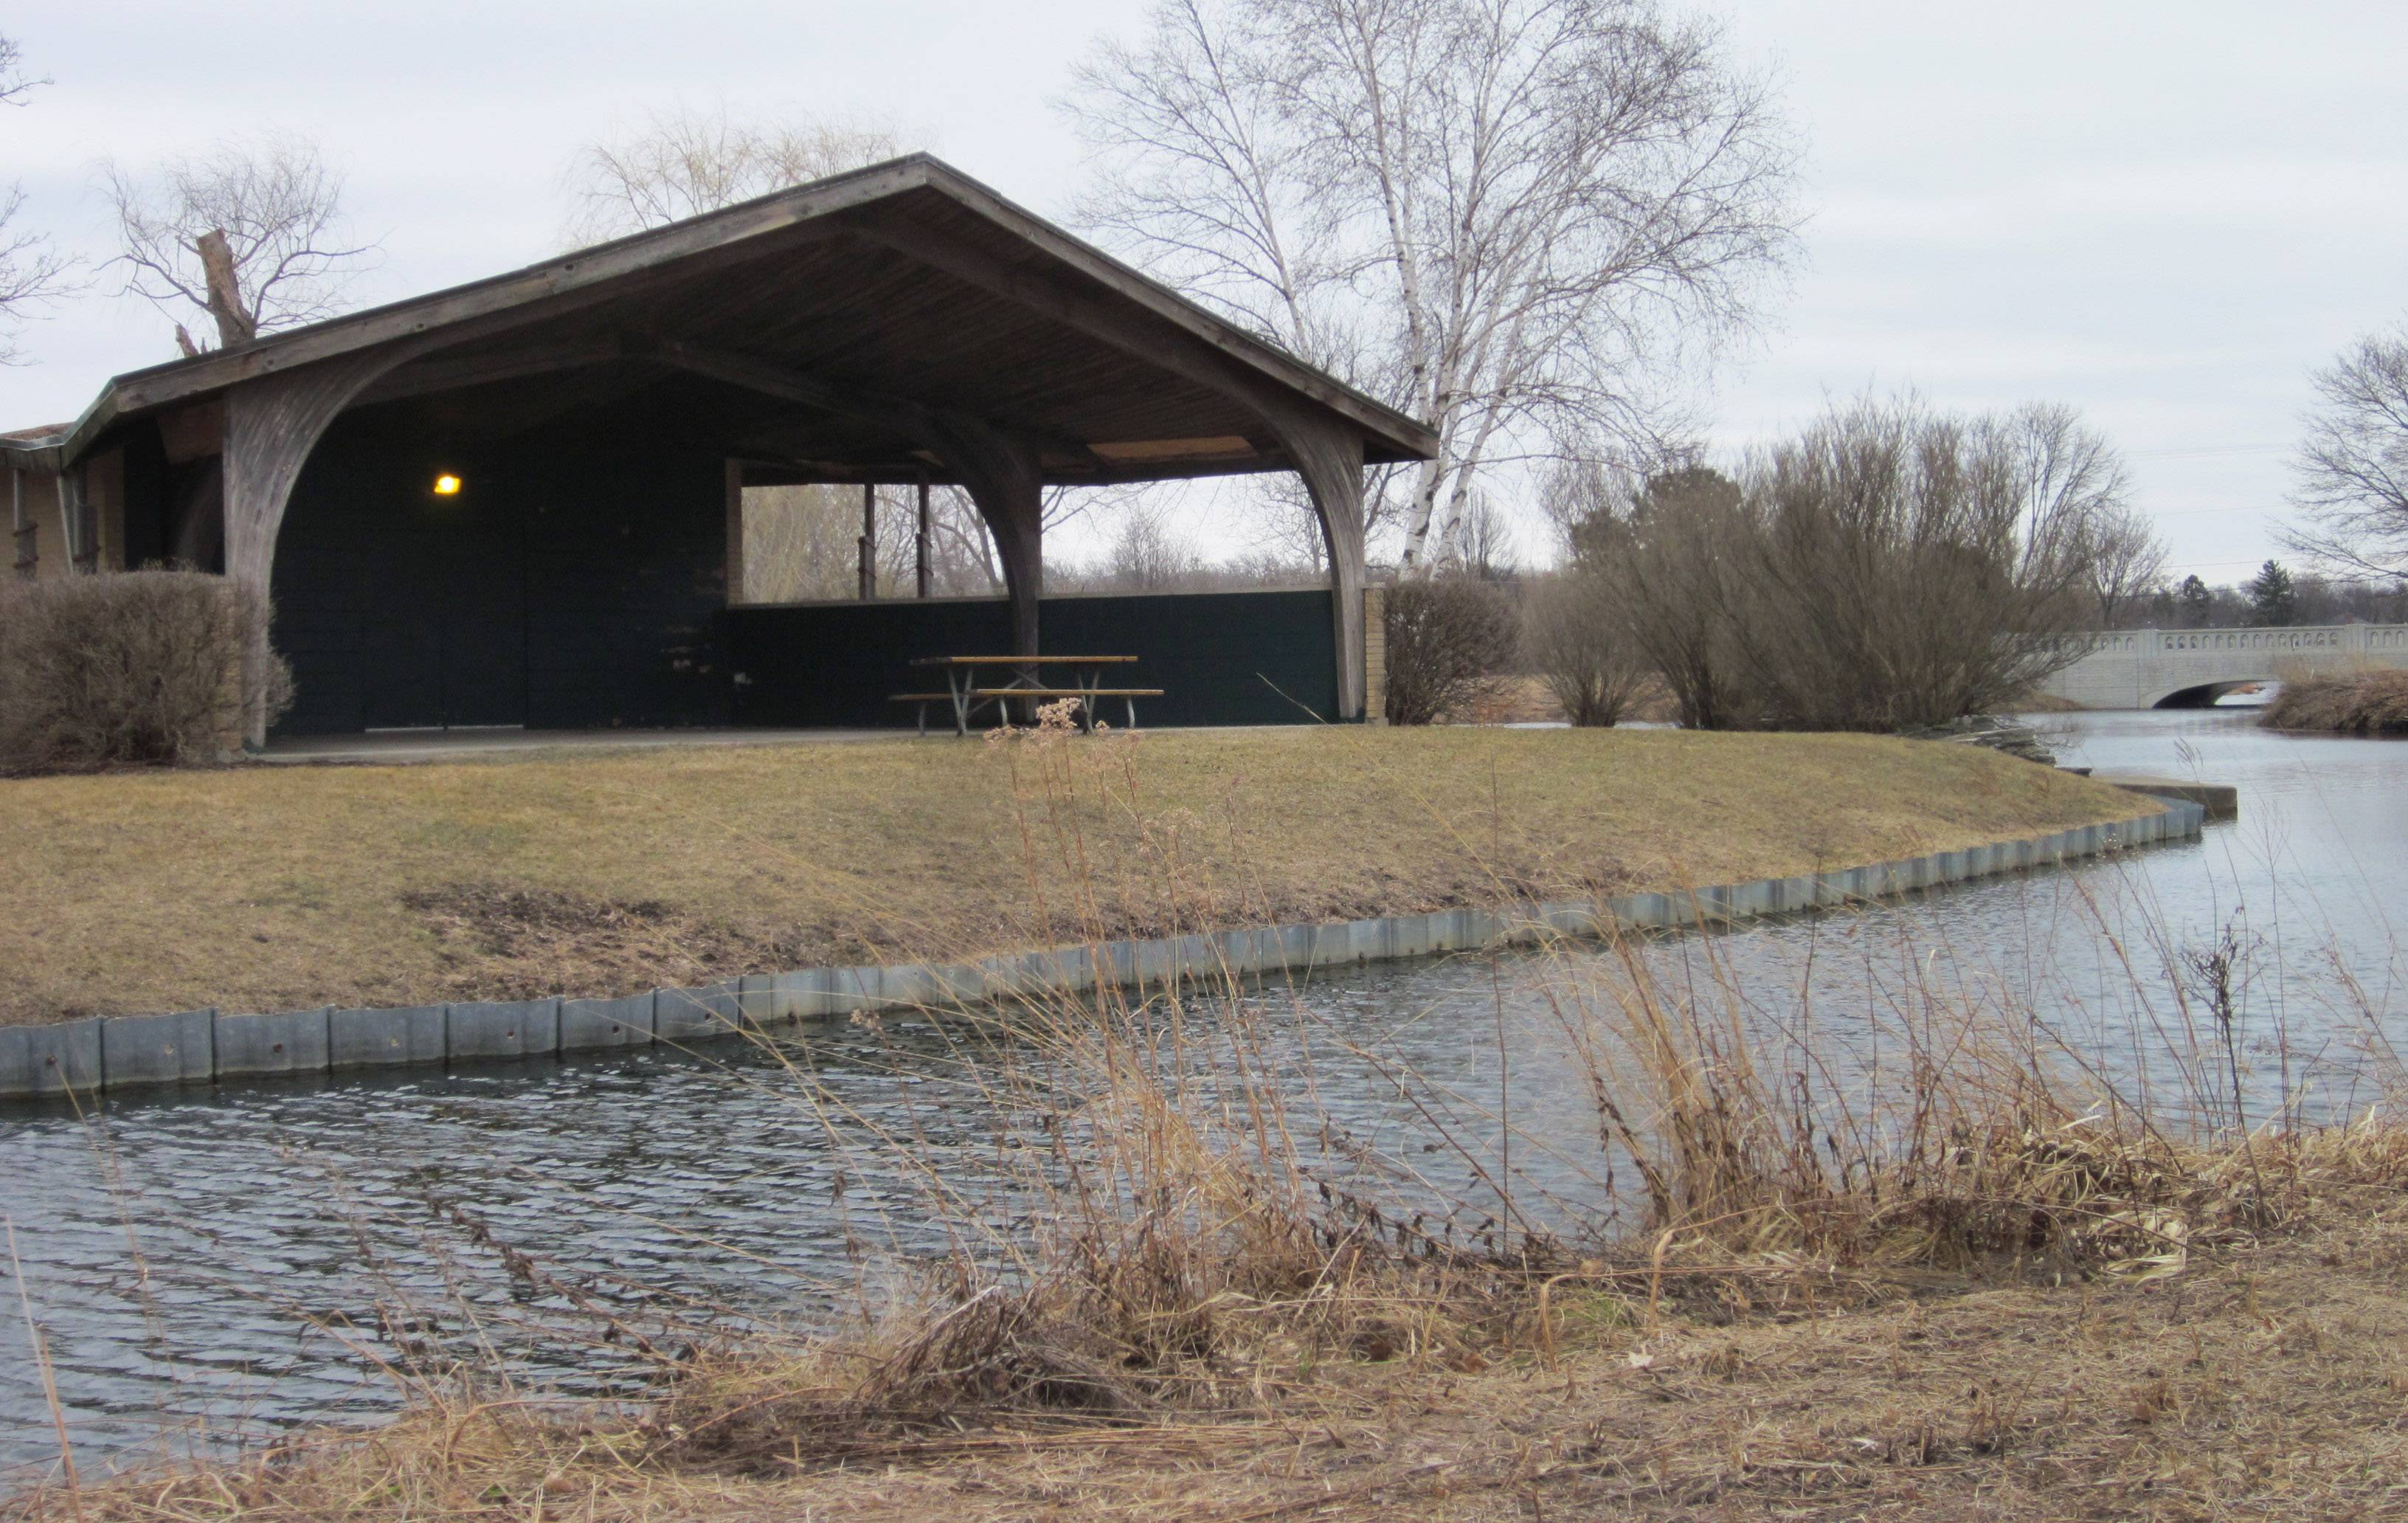 The band shell at Butler Lake Park in Libertyville was built in the 1960s.